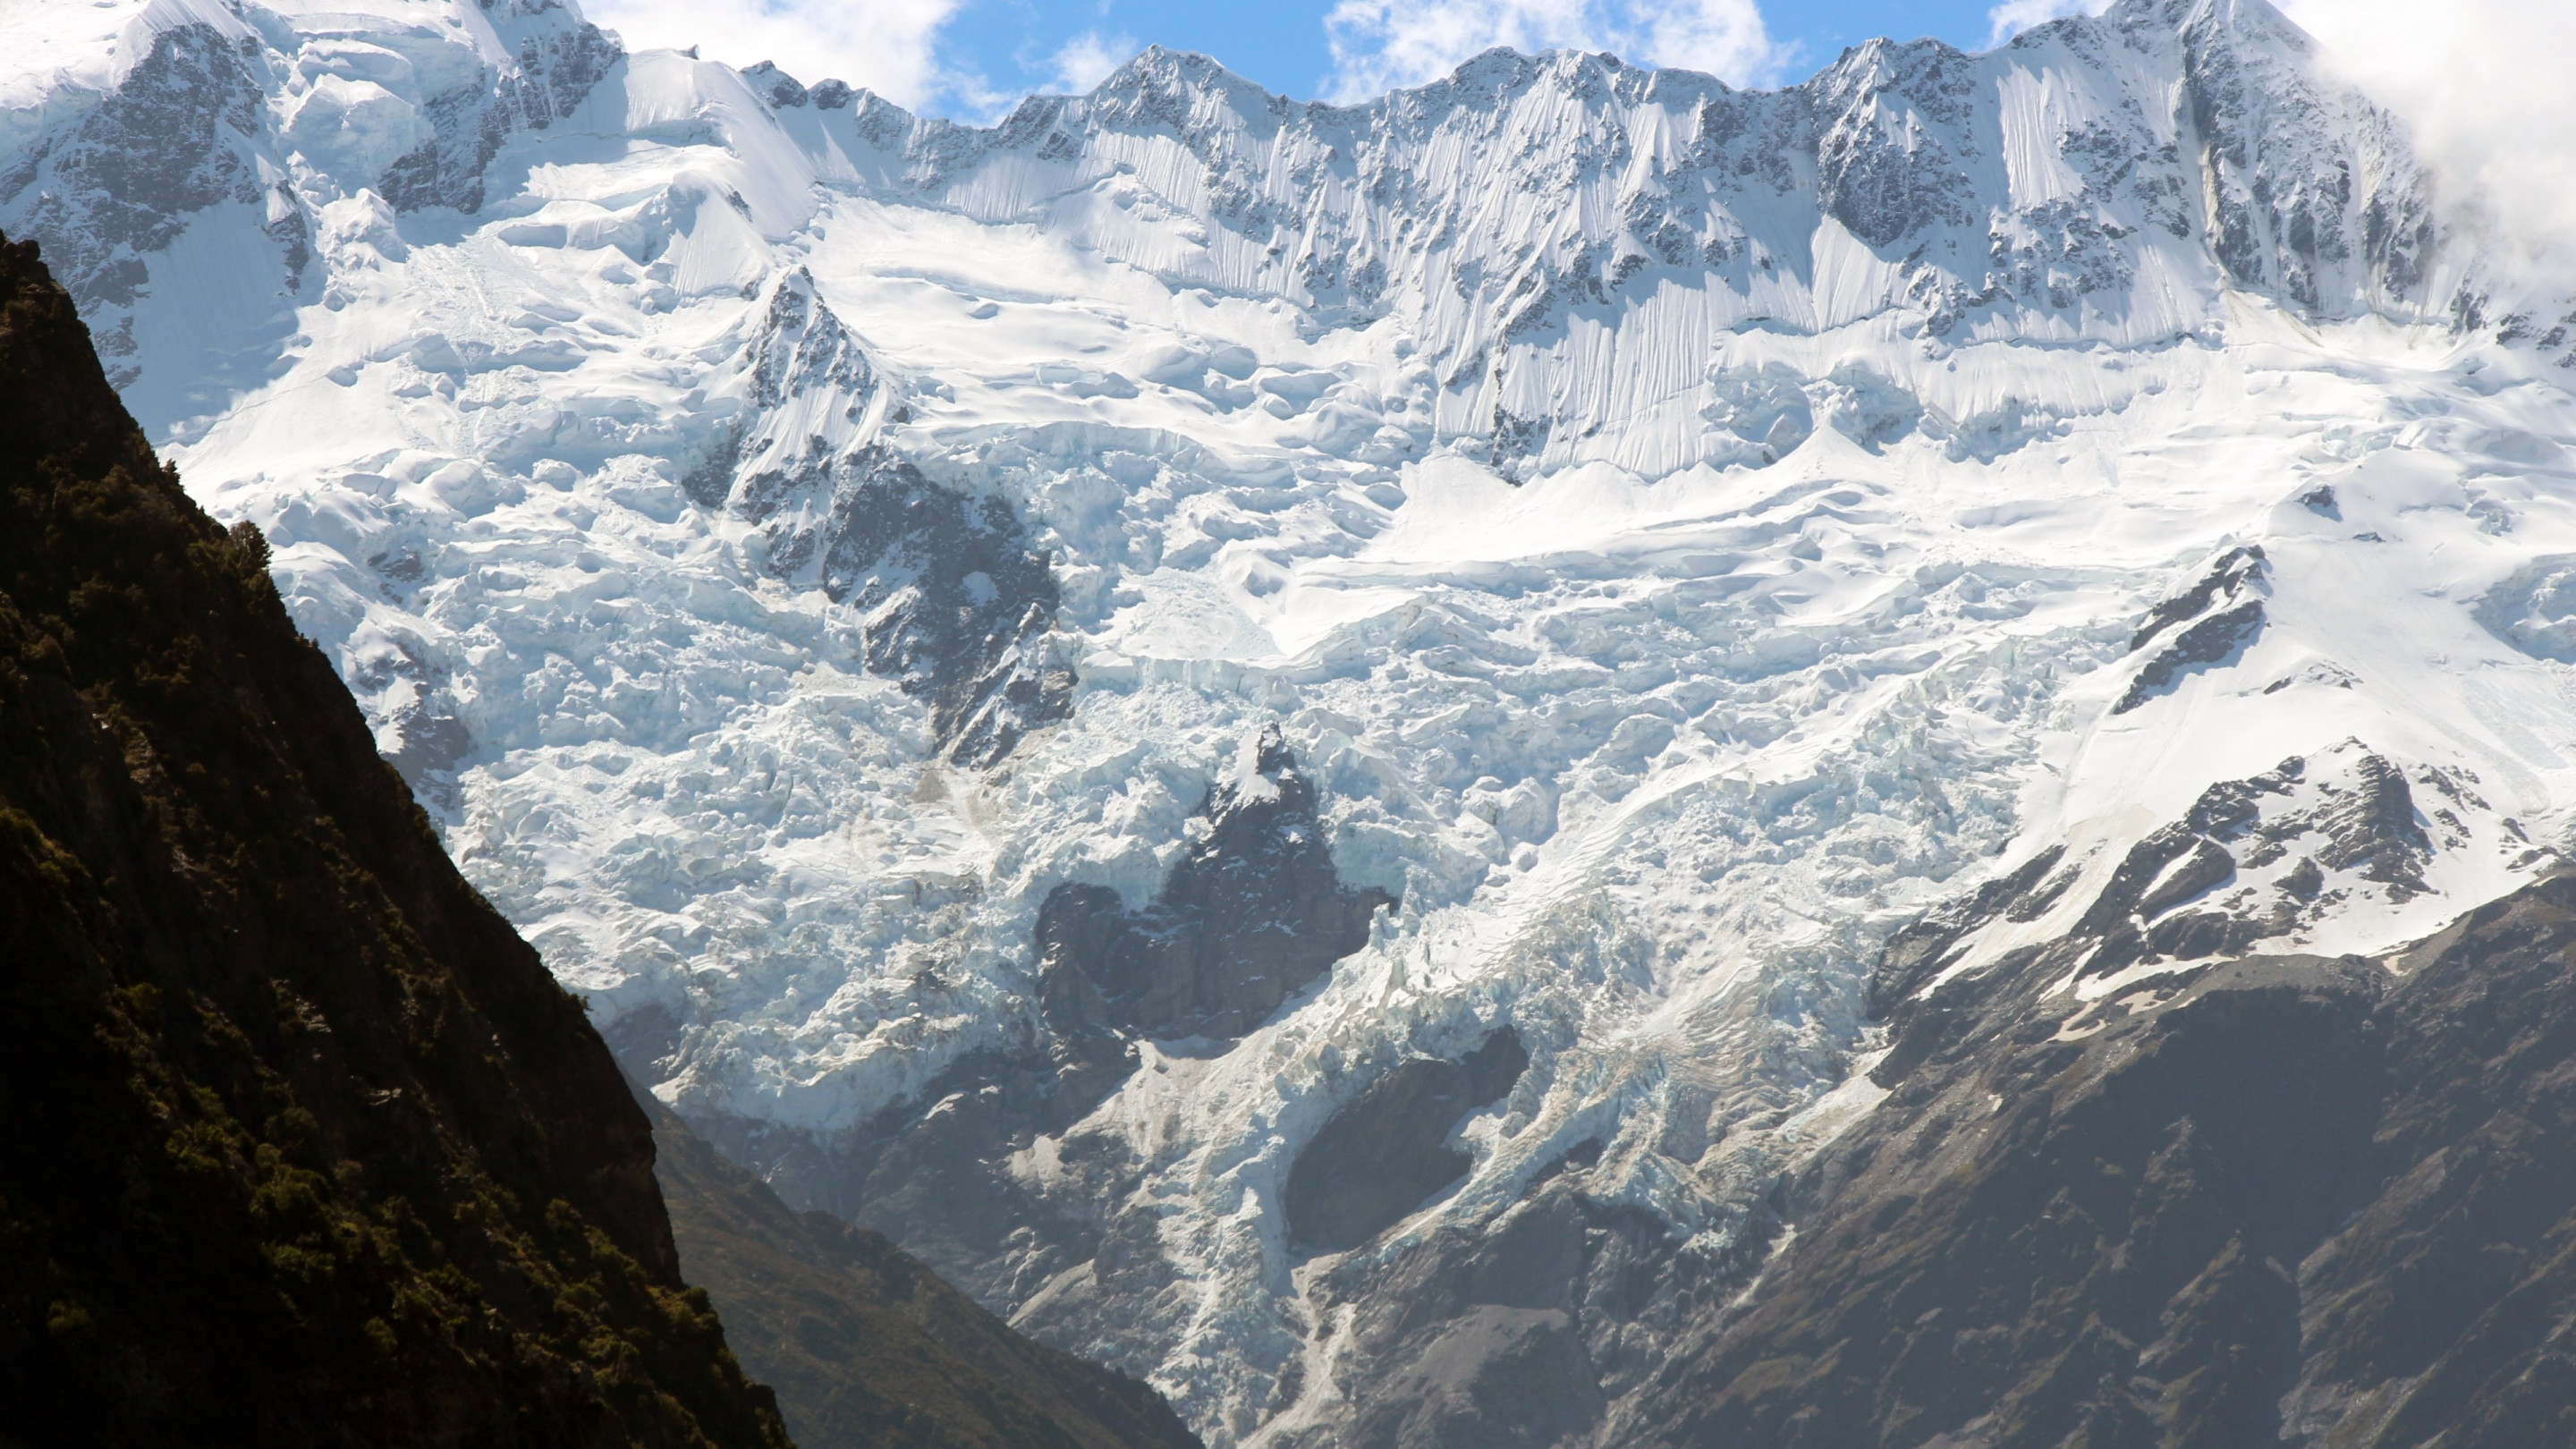 Hooker glacier from Aoraki, New Zealand wallpaper 2880x1620